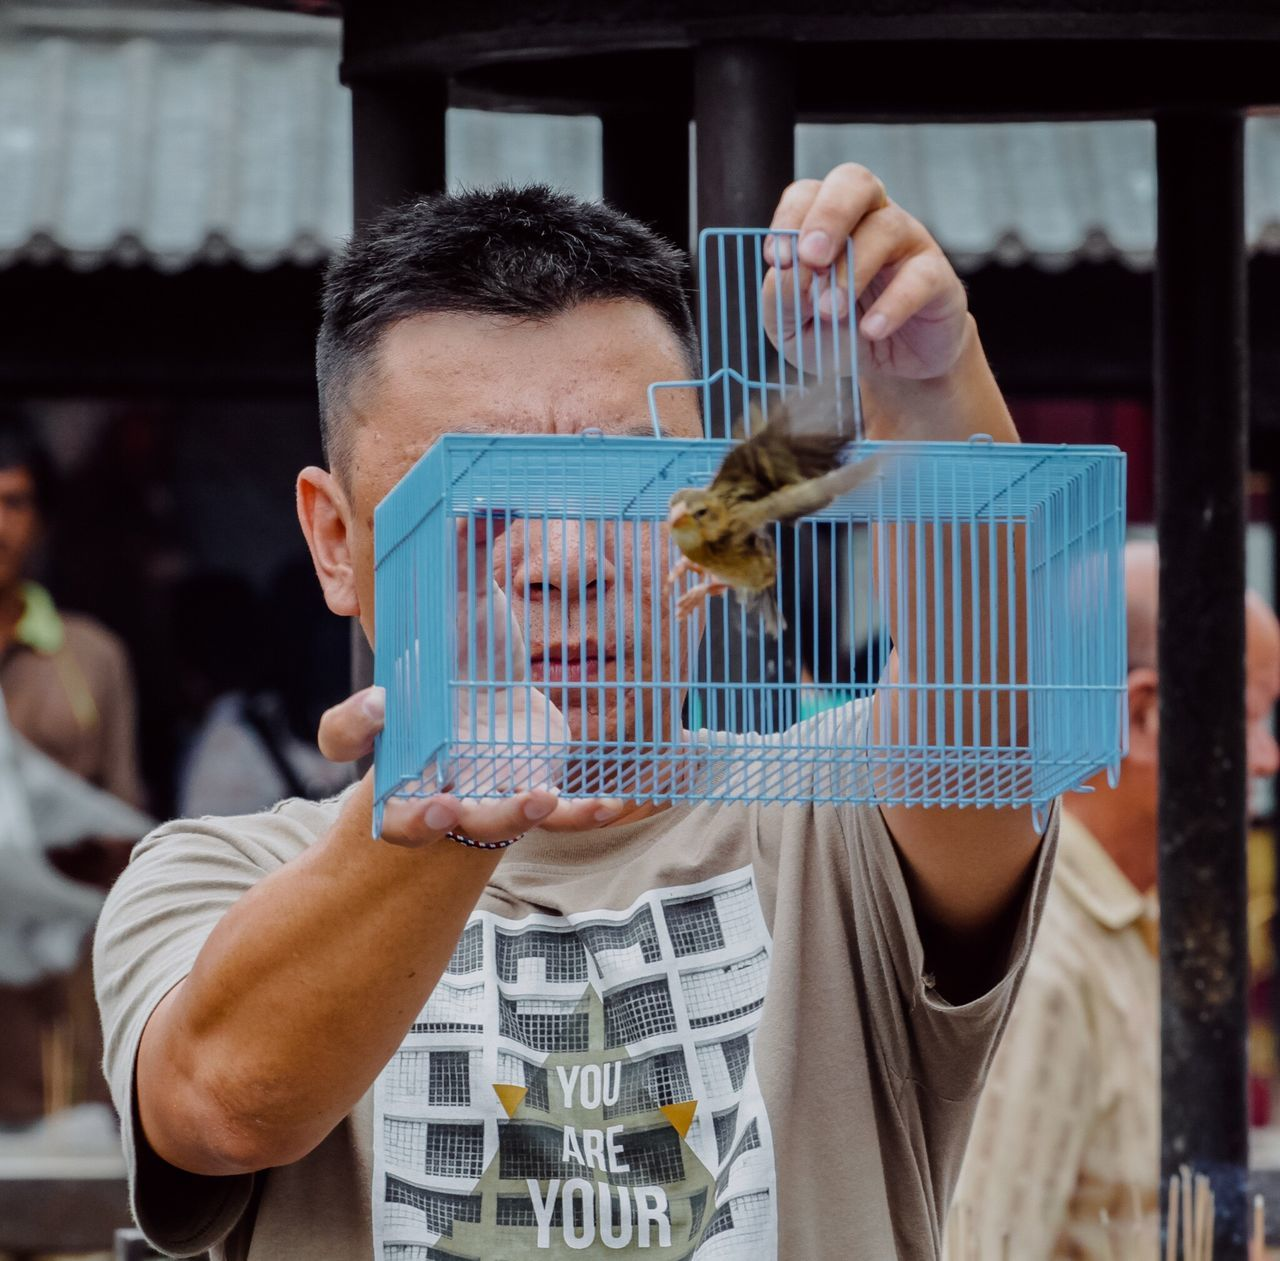 Born to be wild Men Mature Adult Chinese Religious  Cage Bird Flying Flying Bird Uncage Freedom Guy Penang Malaysia Culture Animal Outdoors Streetphotography Street Temple Temple Architecture Adult